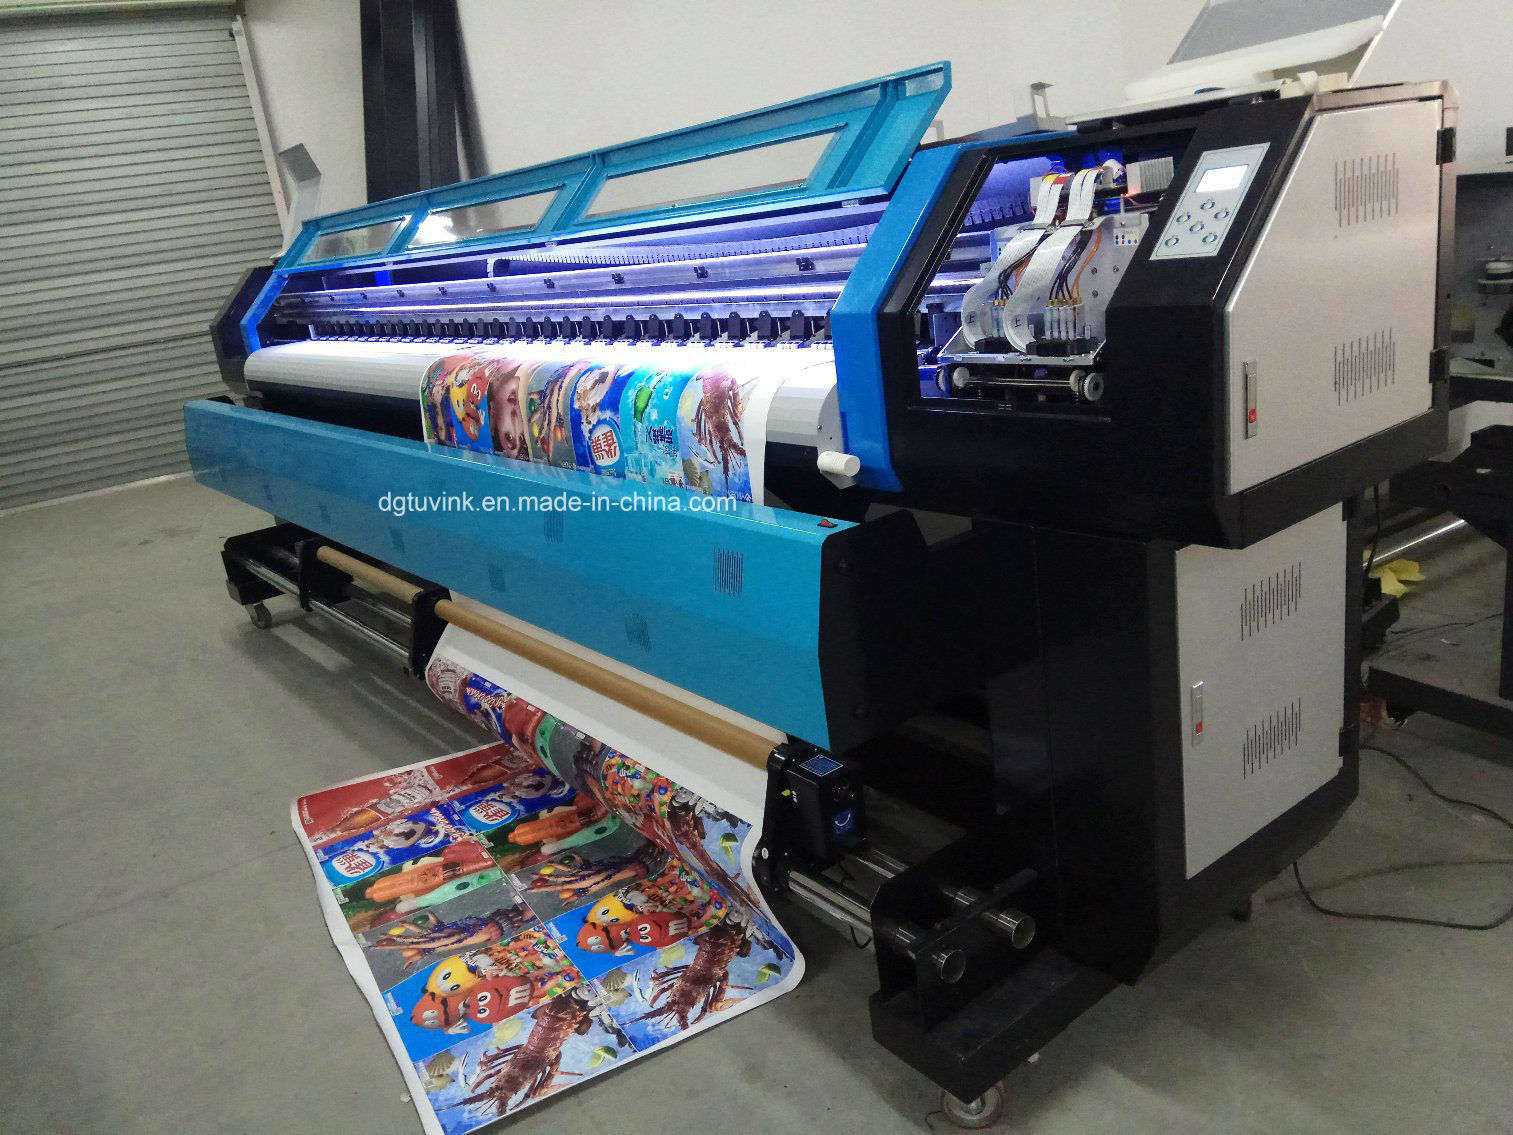 ff16e80f5 China 3.2m Exhibition Banner Election Post Digital Large Format Printing  Machine - China Large Format Printer, Printing Machine